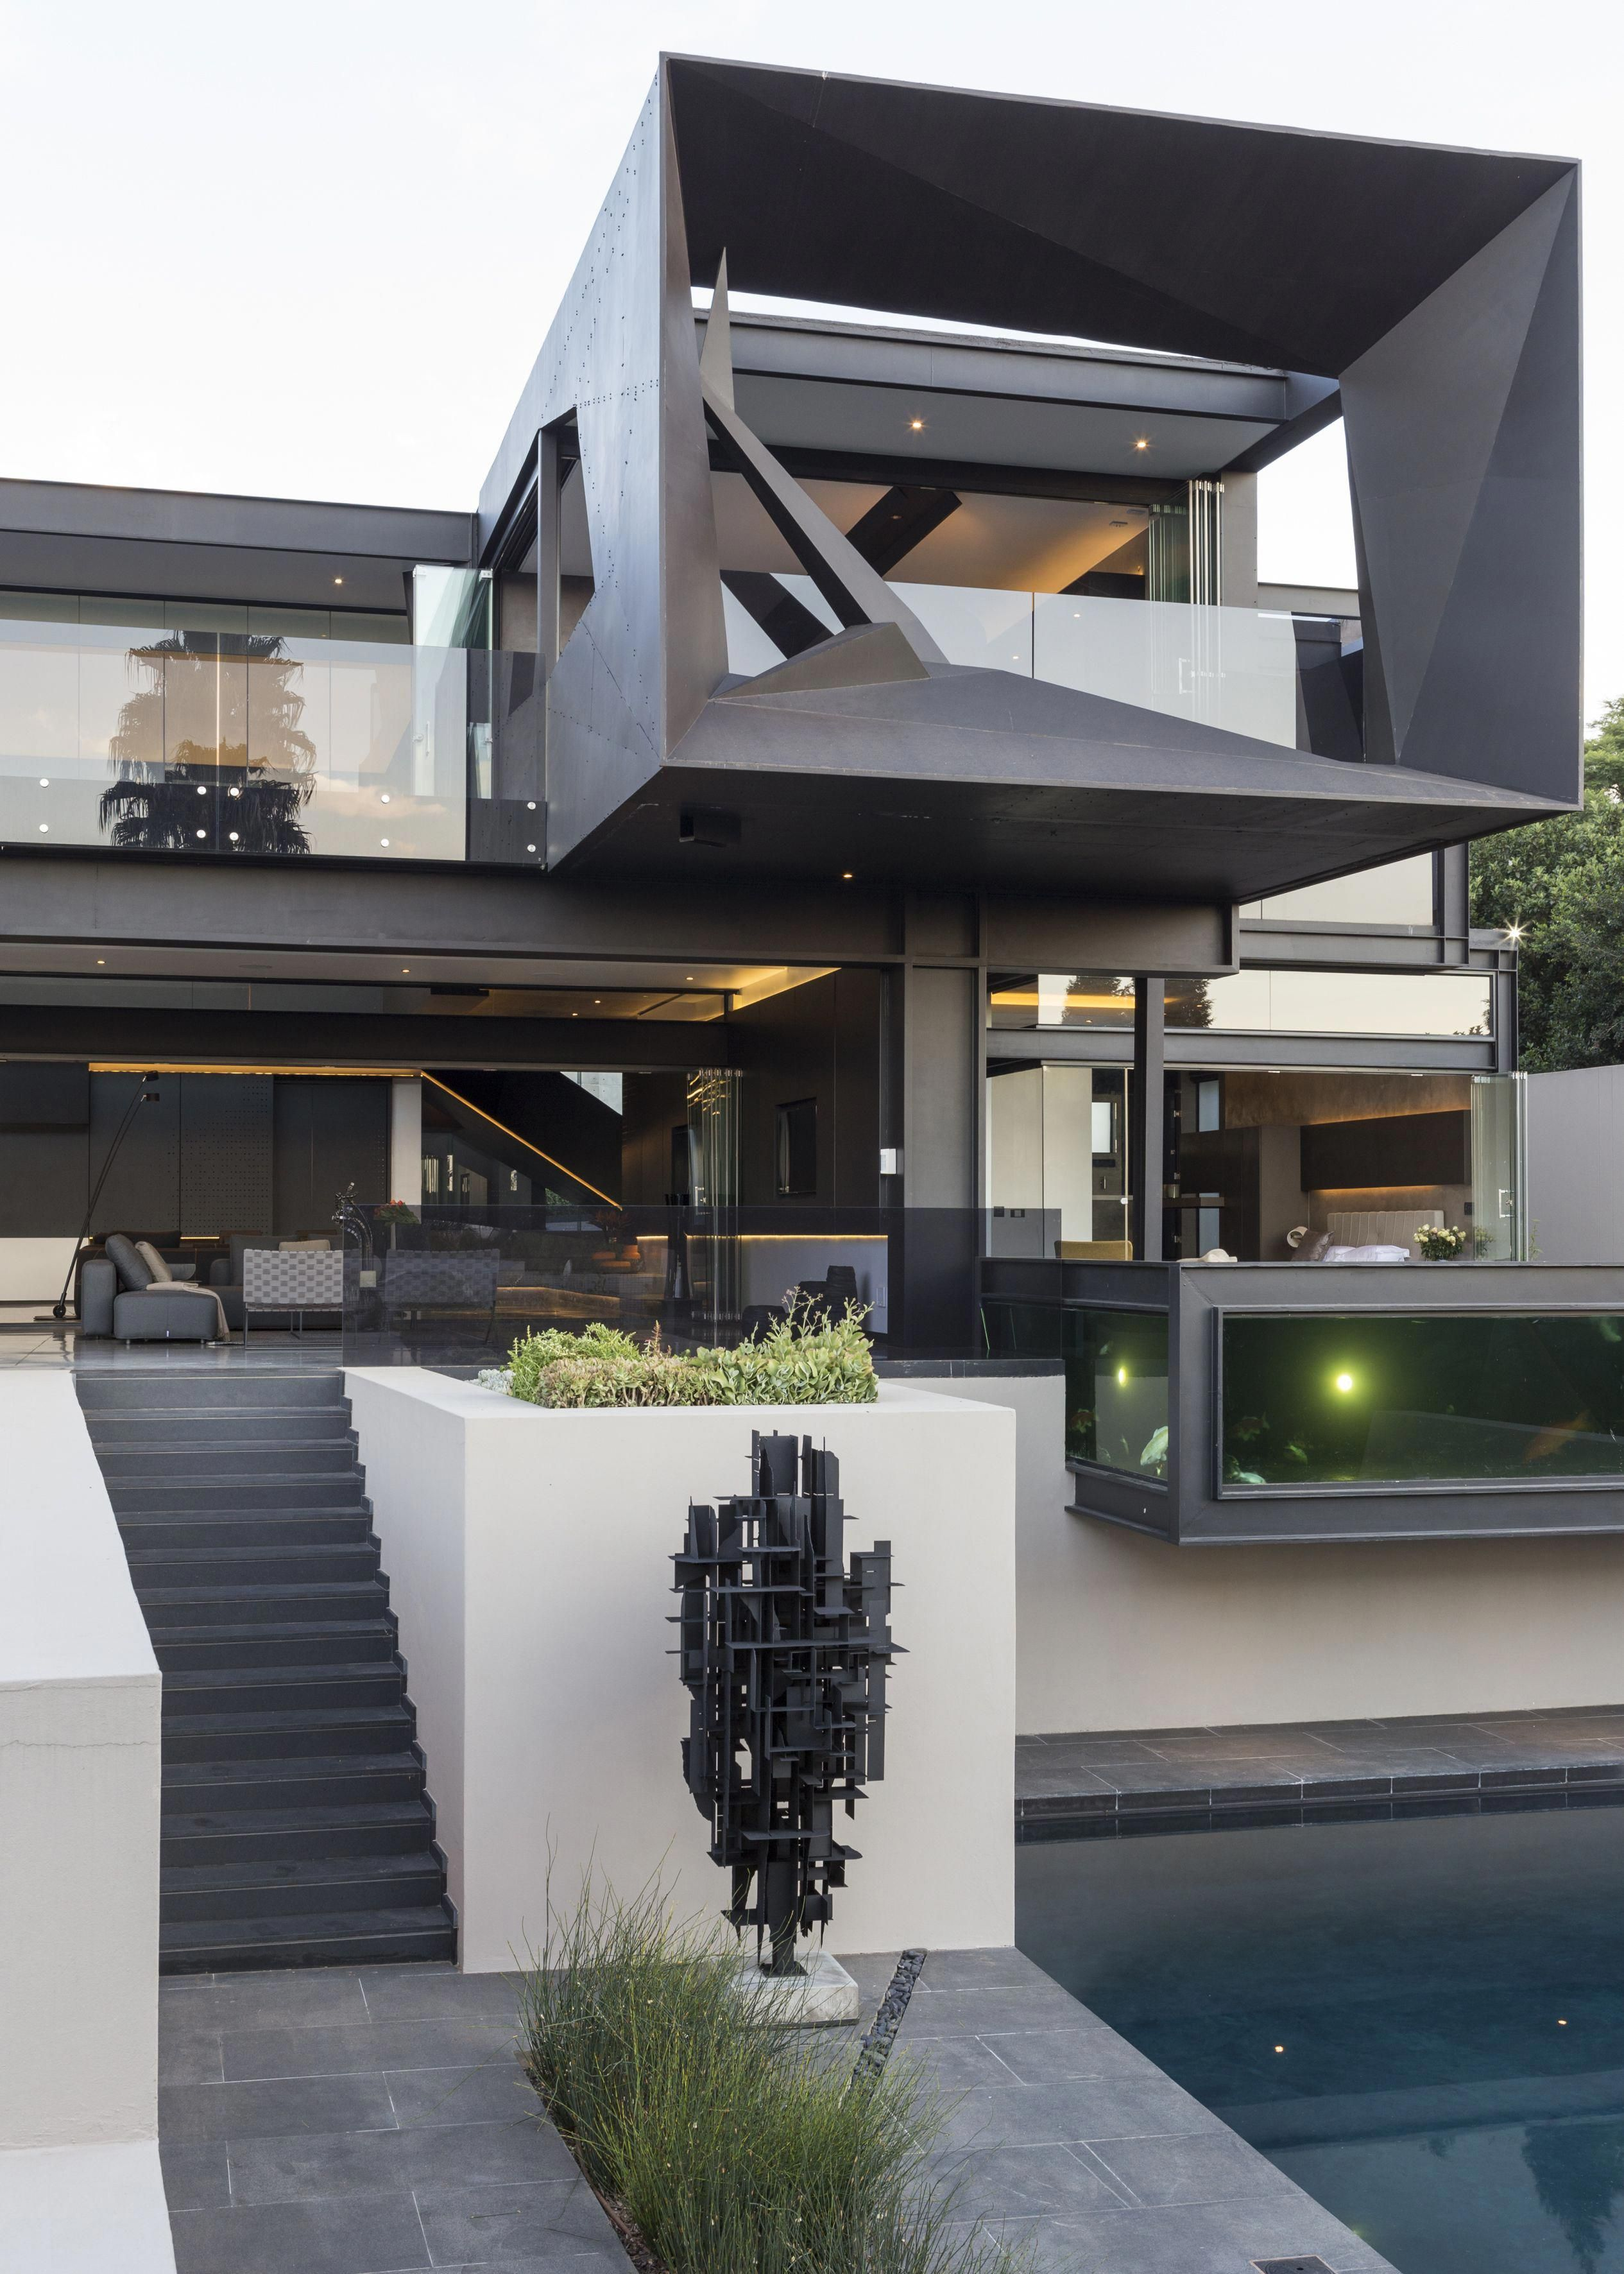 Best houses in the world amazing kloof road house archibeast architecture homes modern contemporary futuristic facade modernhomedesign also rh pinterest